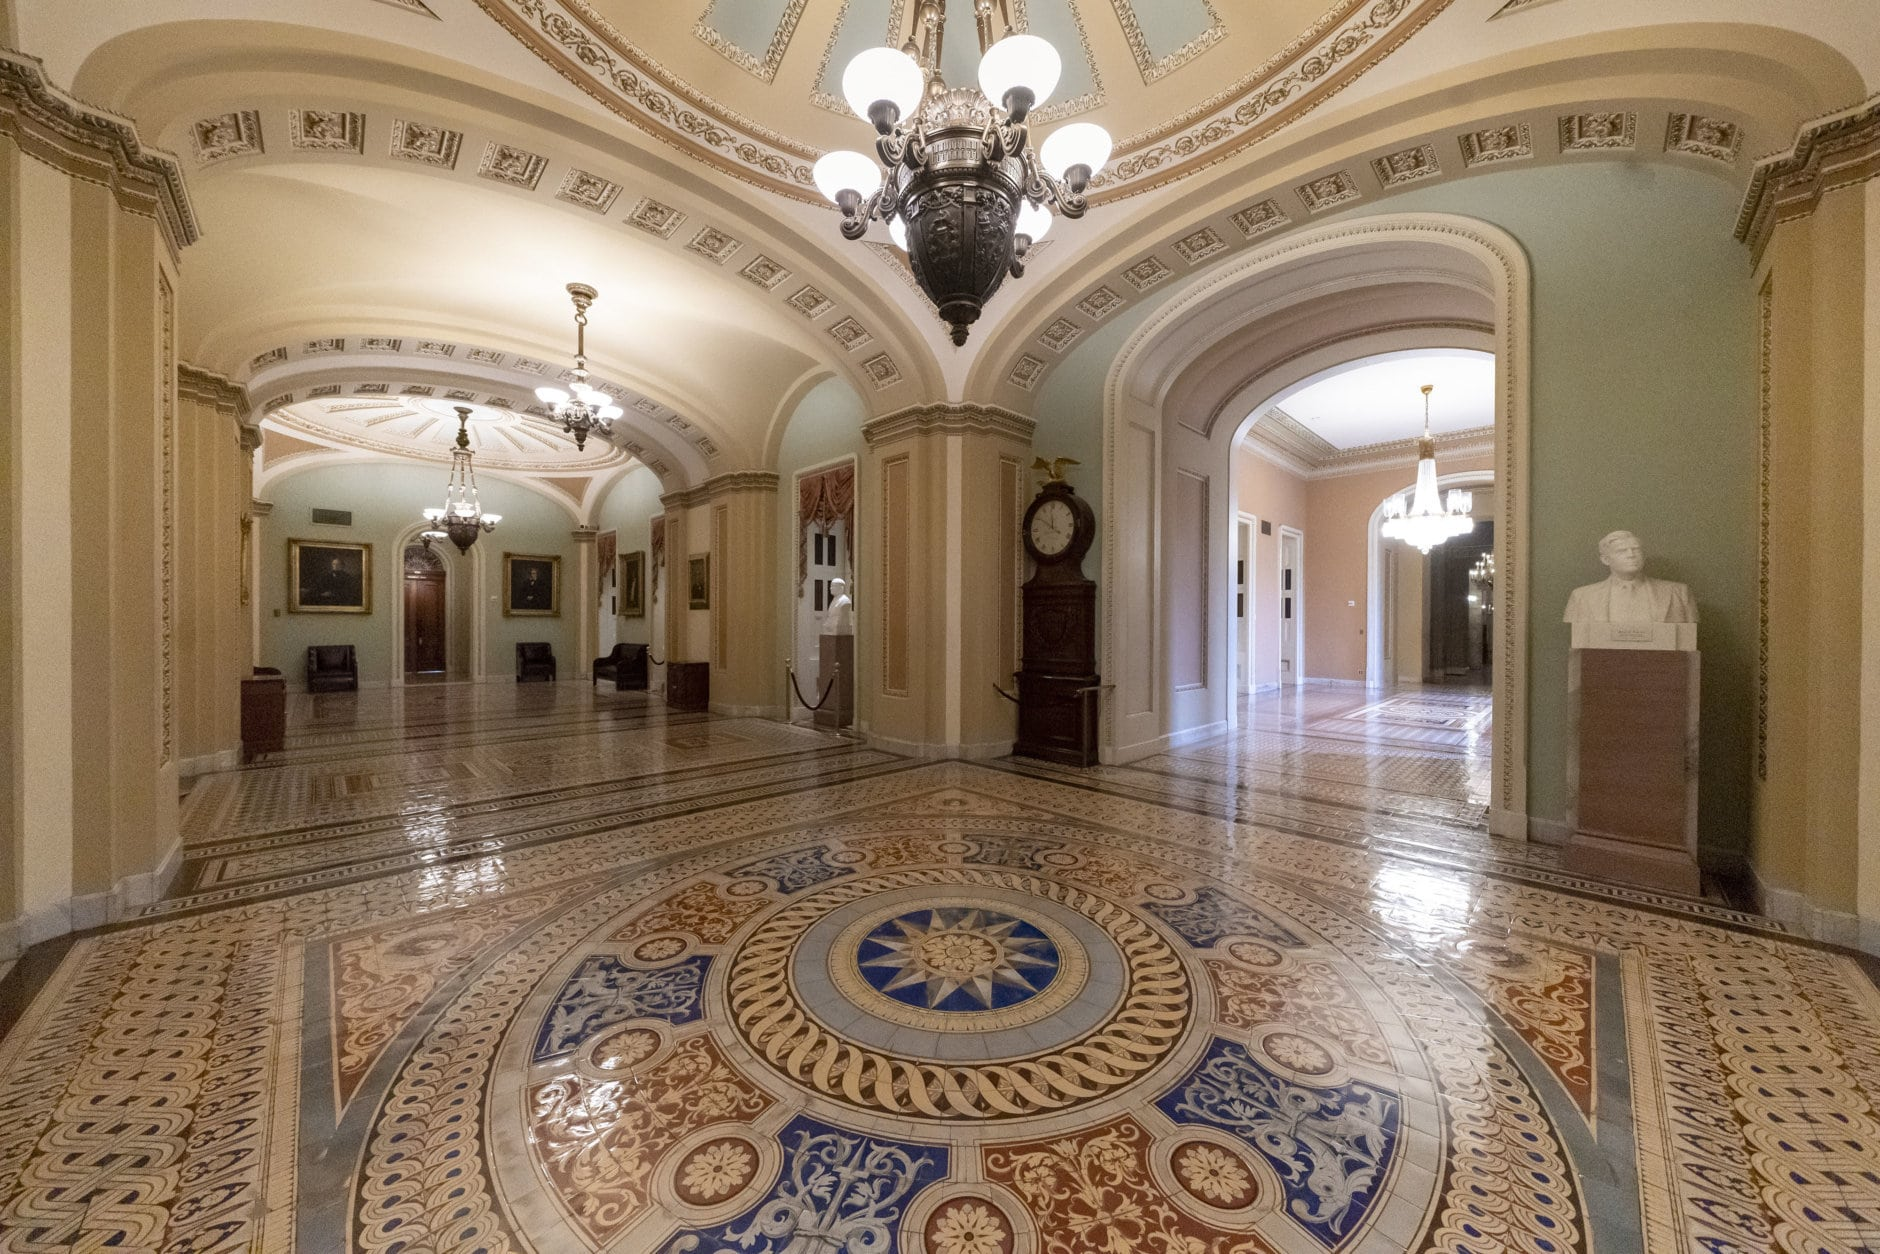 Empty corridors around the Senate are seen on Capitol Hill in Washington, Thursday, Dec. 27, 2018, during a partial government shutdown.  Chances look slim for ending the partial government shutdown any time soon. Lawmakers are away from Washington for the holidays and have been told they will get 24 hours' notice before having to return for a vote. (AP Photo/J. Scott Applewhite)